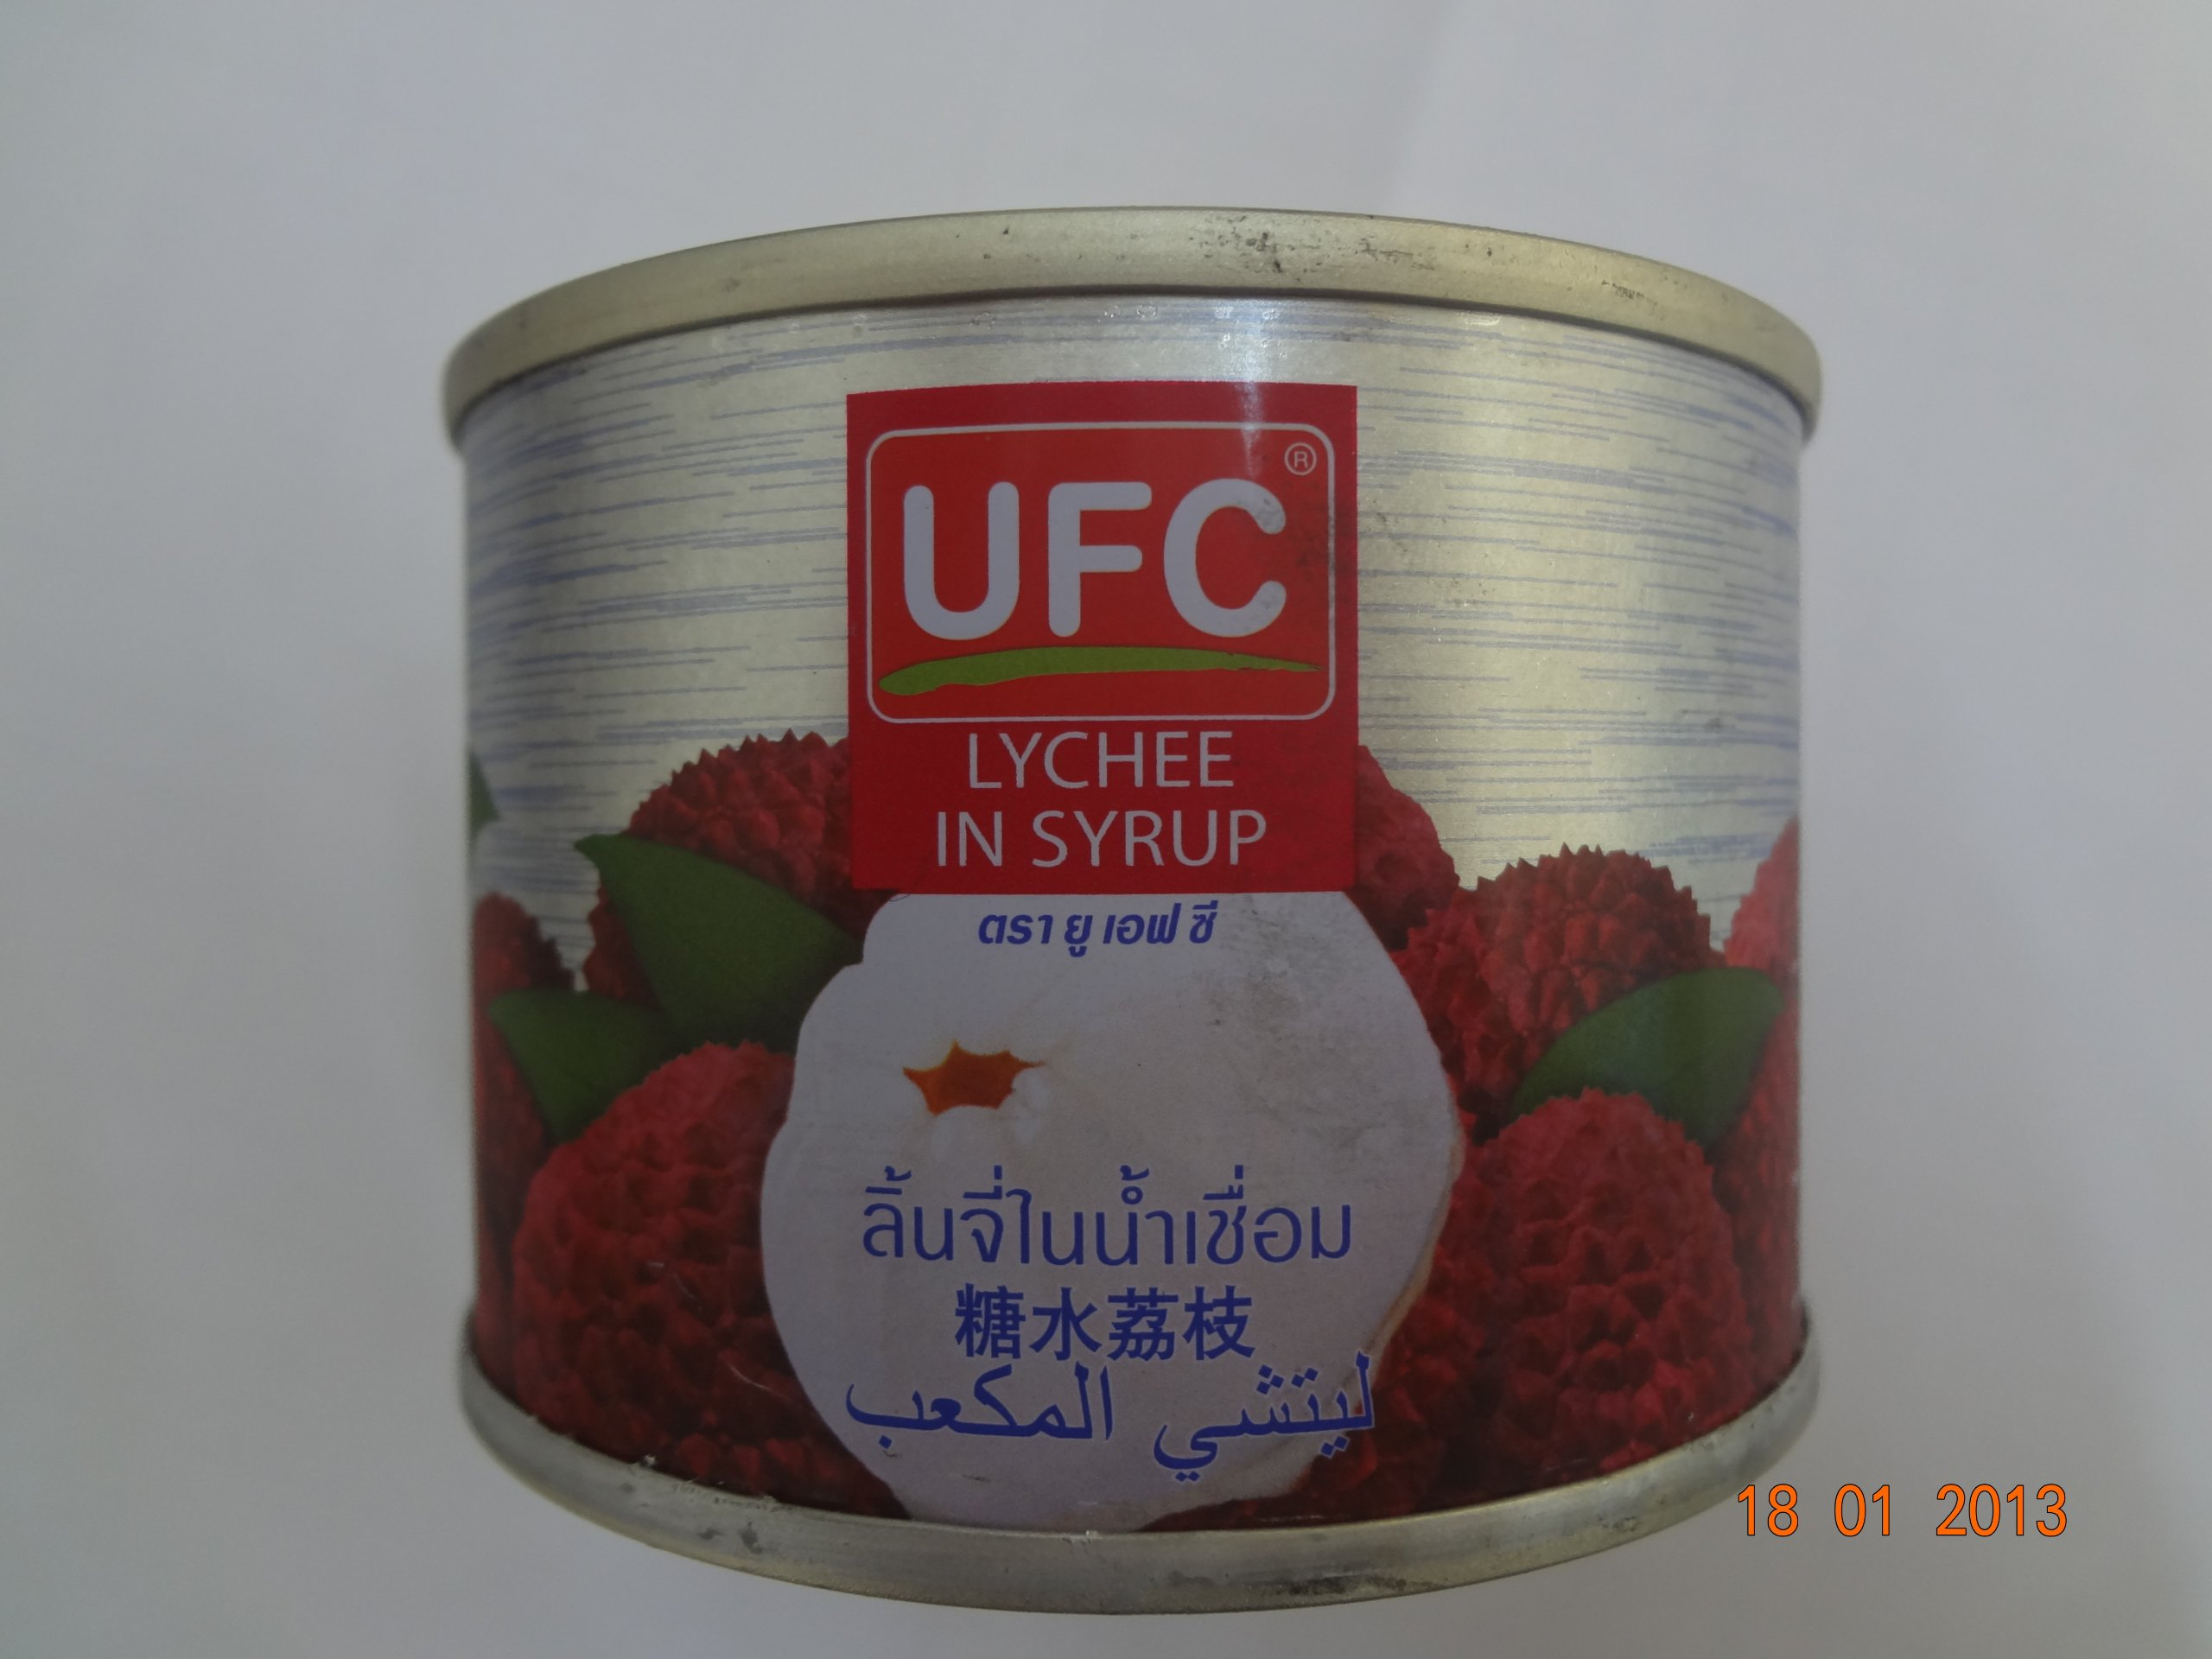 UFC Lychee in syrup 170 g (6oz) by UFC by UFC (Image #1)